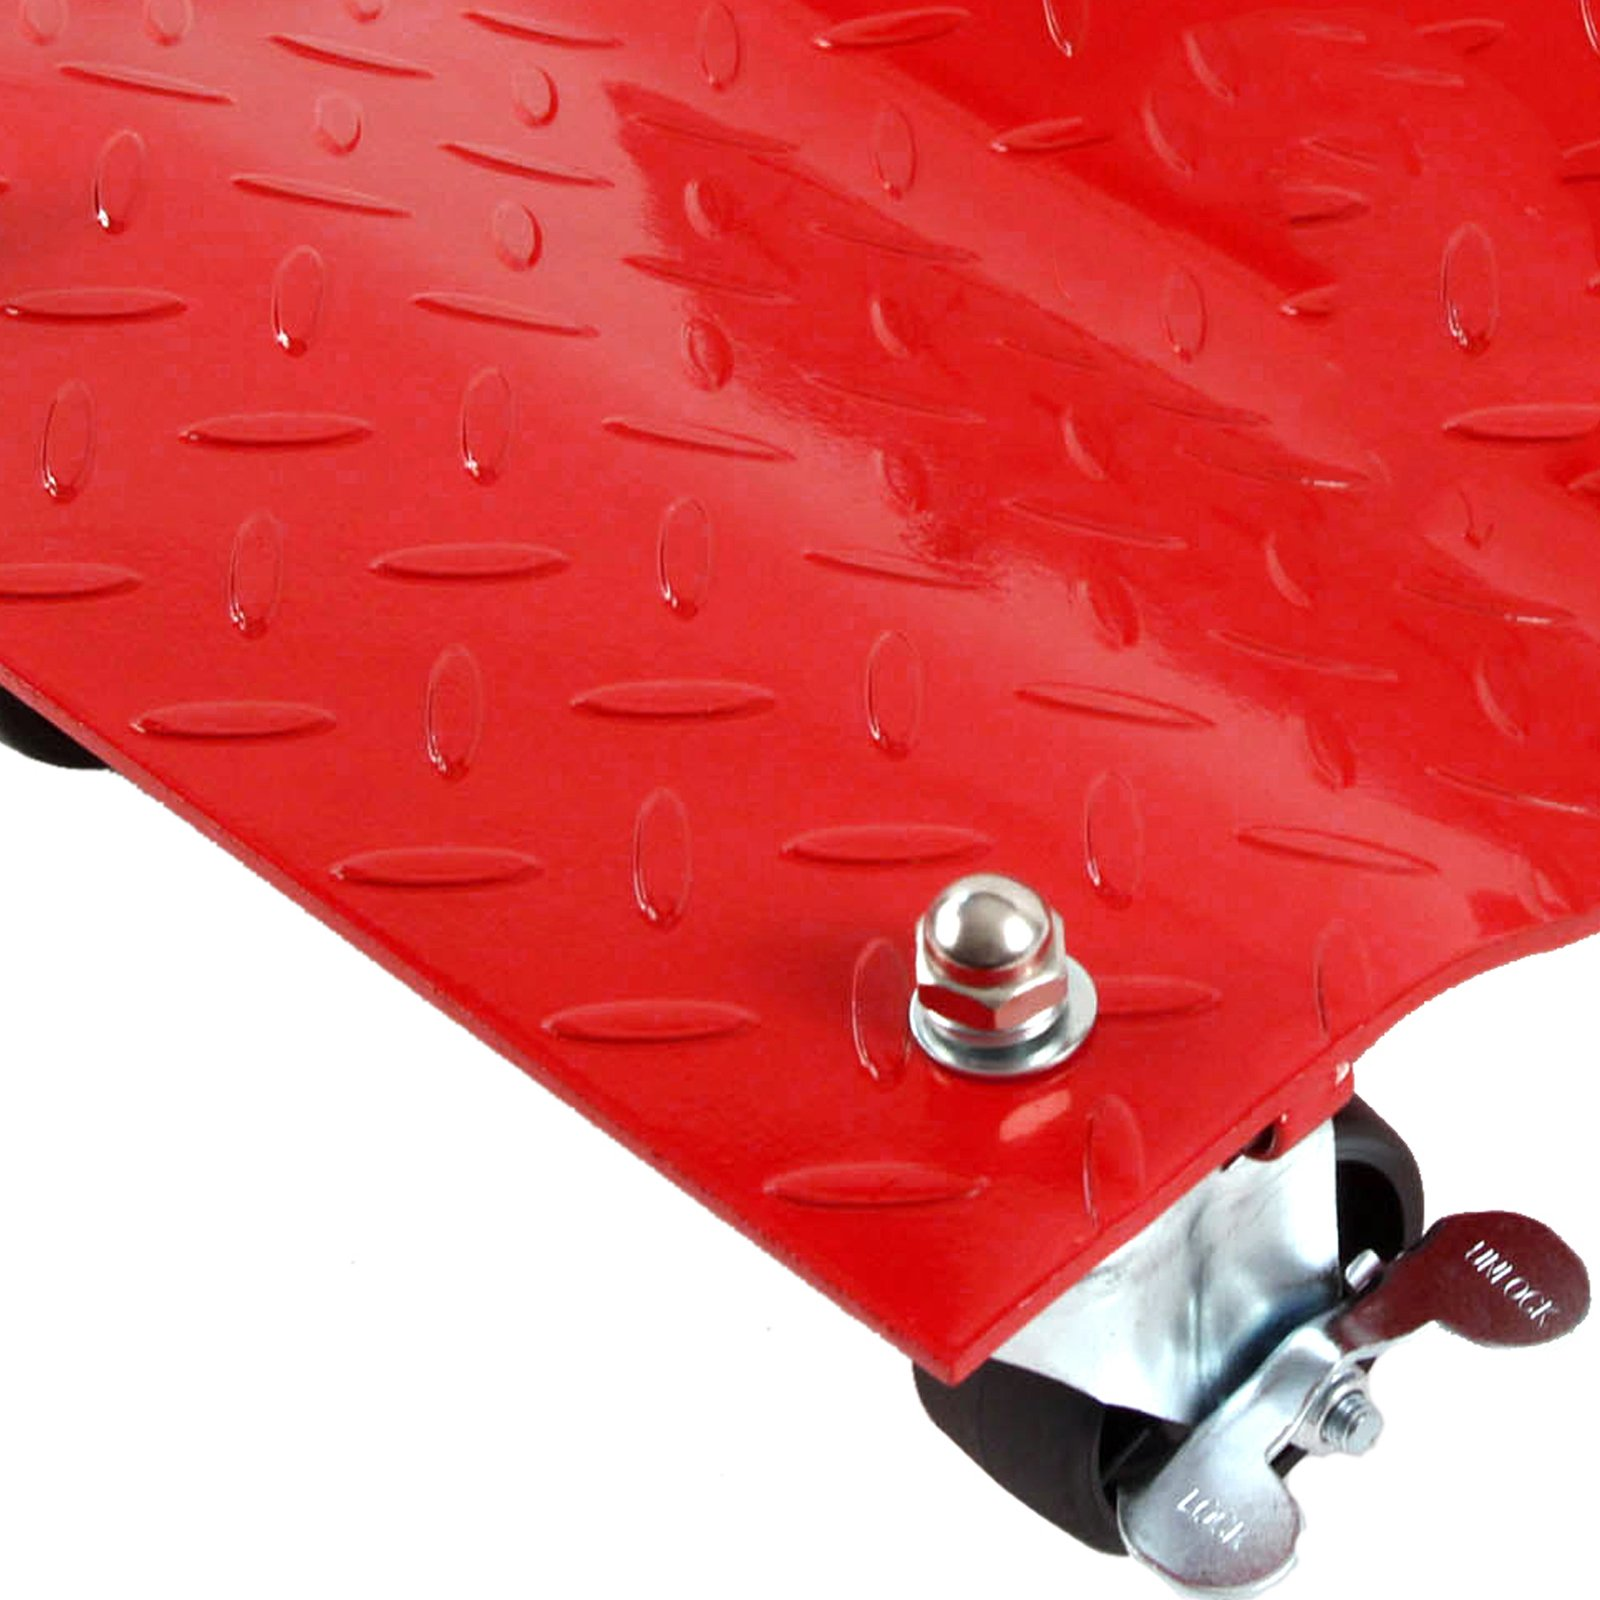 4 - Red 12'' Tire Premium Skates Wheel Car Dolly Ball Bearings Skate Makes Moving A Car Easy Furniture Movers by Red Hound Auto (Image #5)